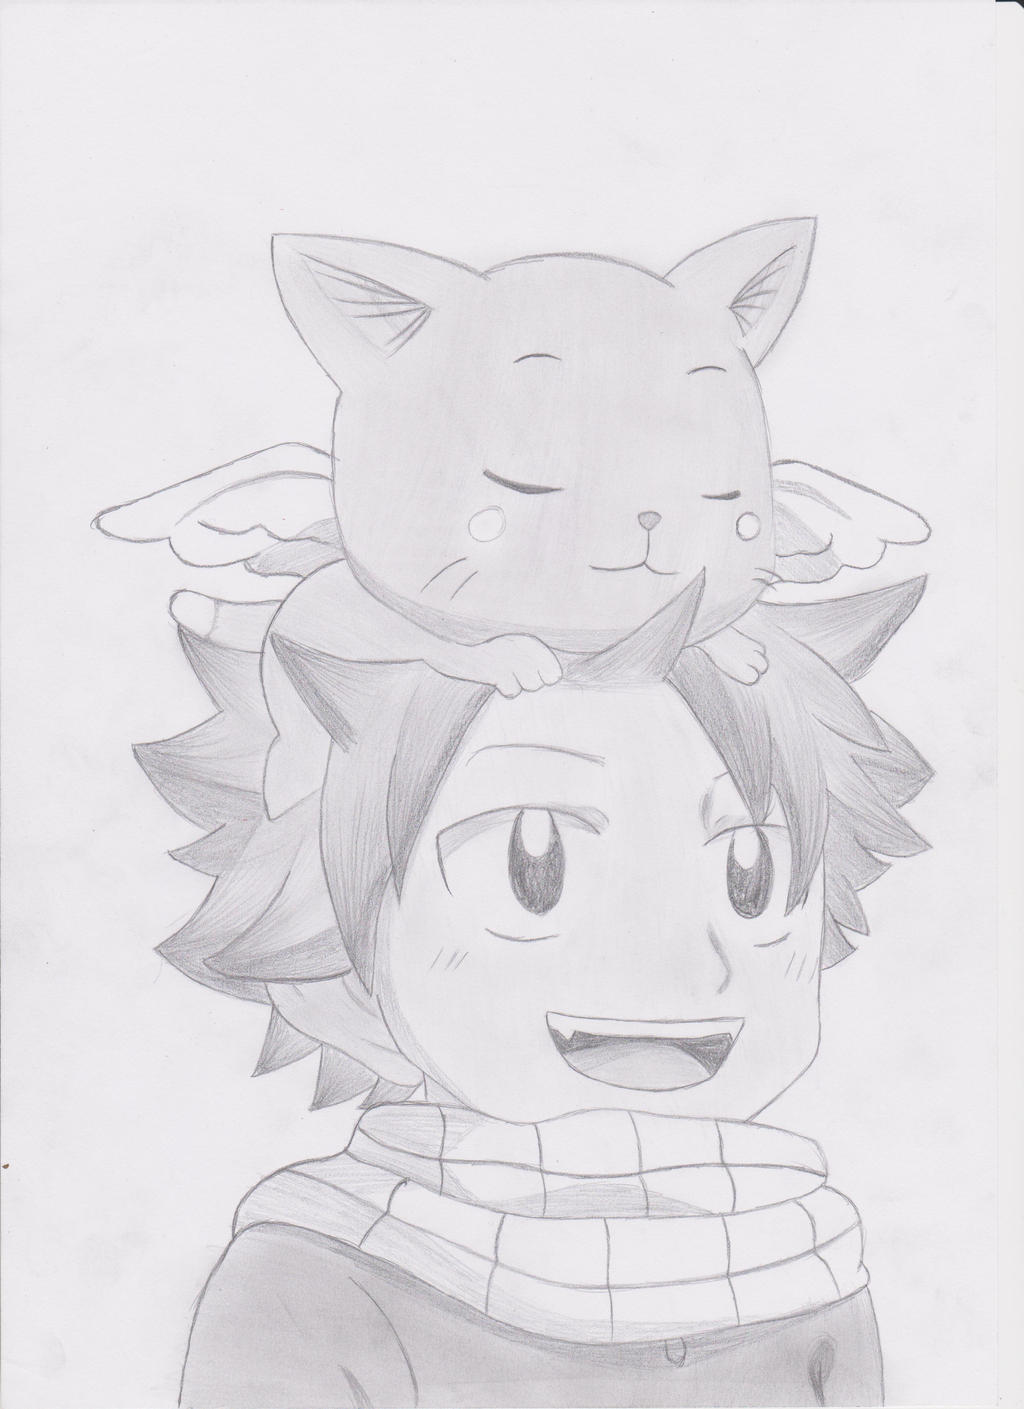 Natsu and happy fairy tail by mystchiief on deviantart - Fairy tail happy and natsu ...